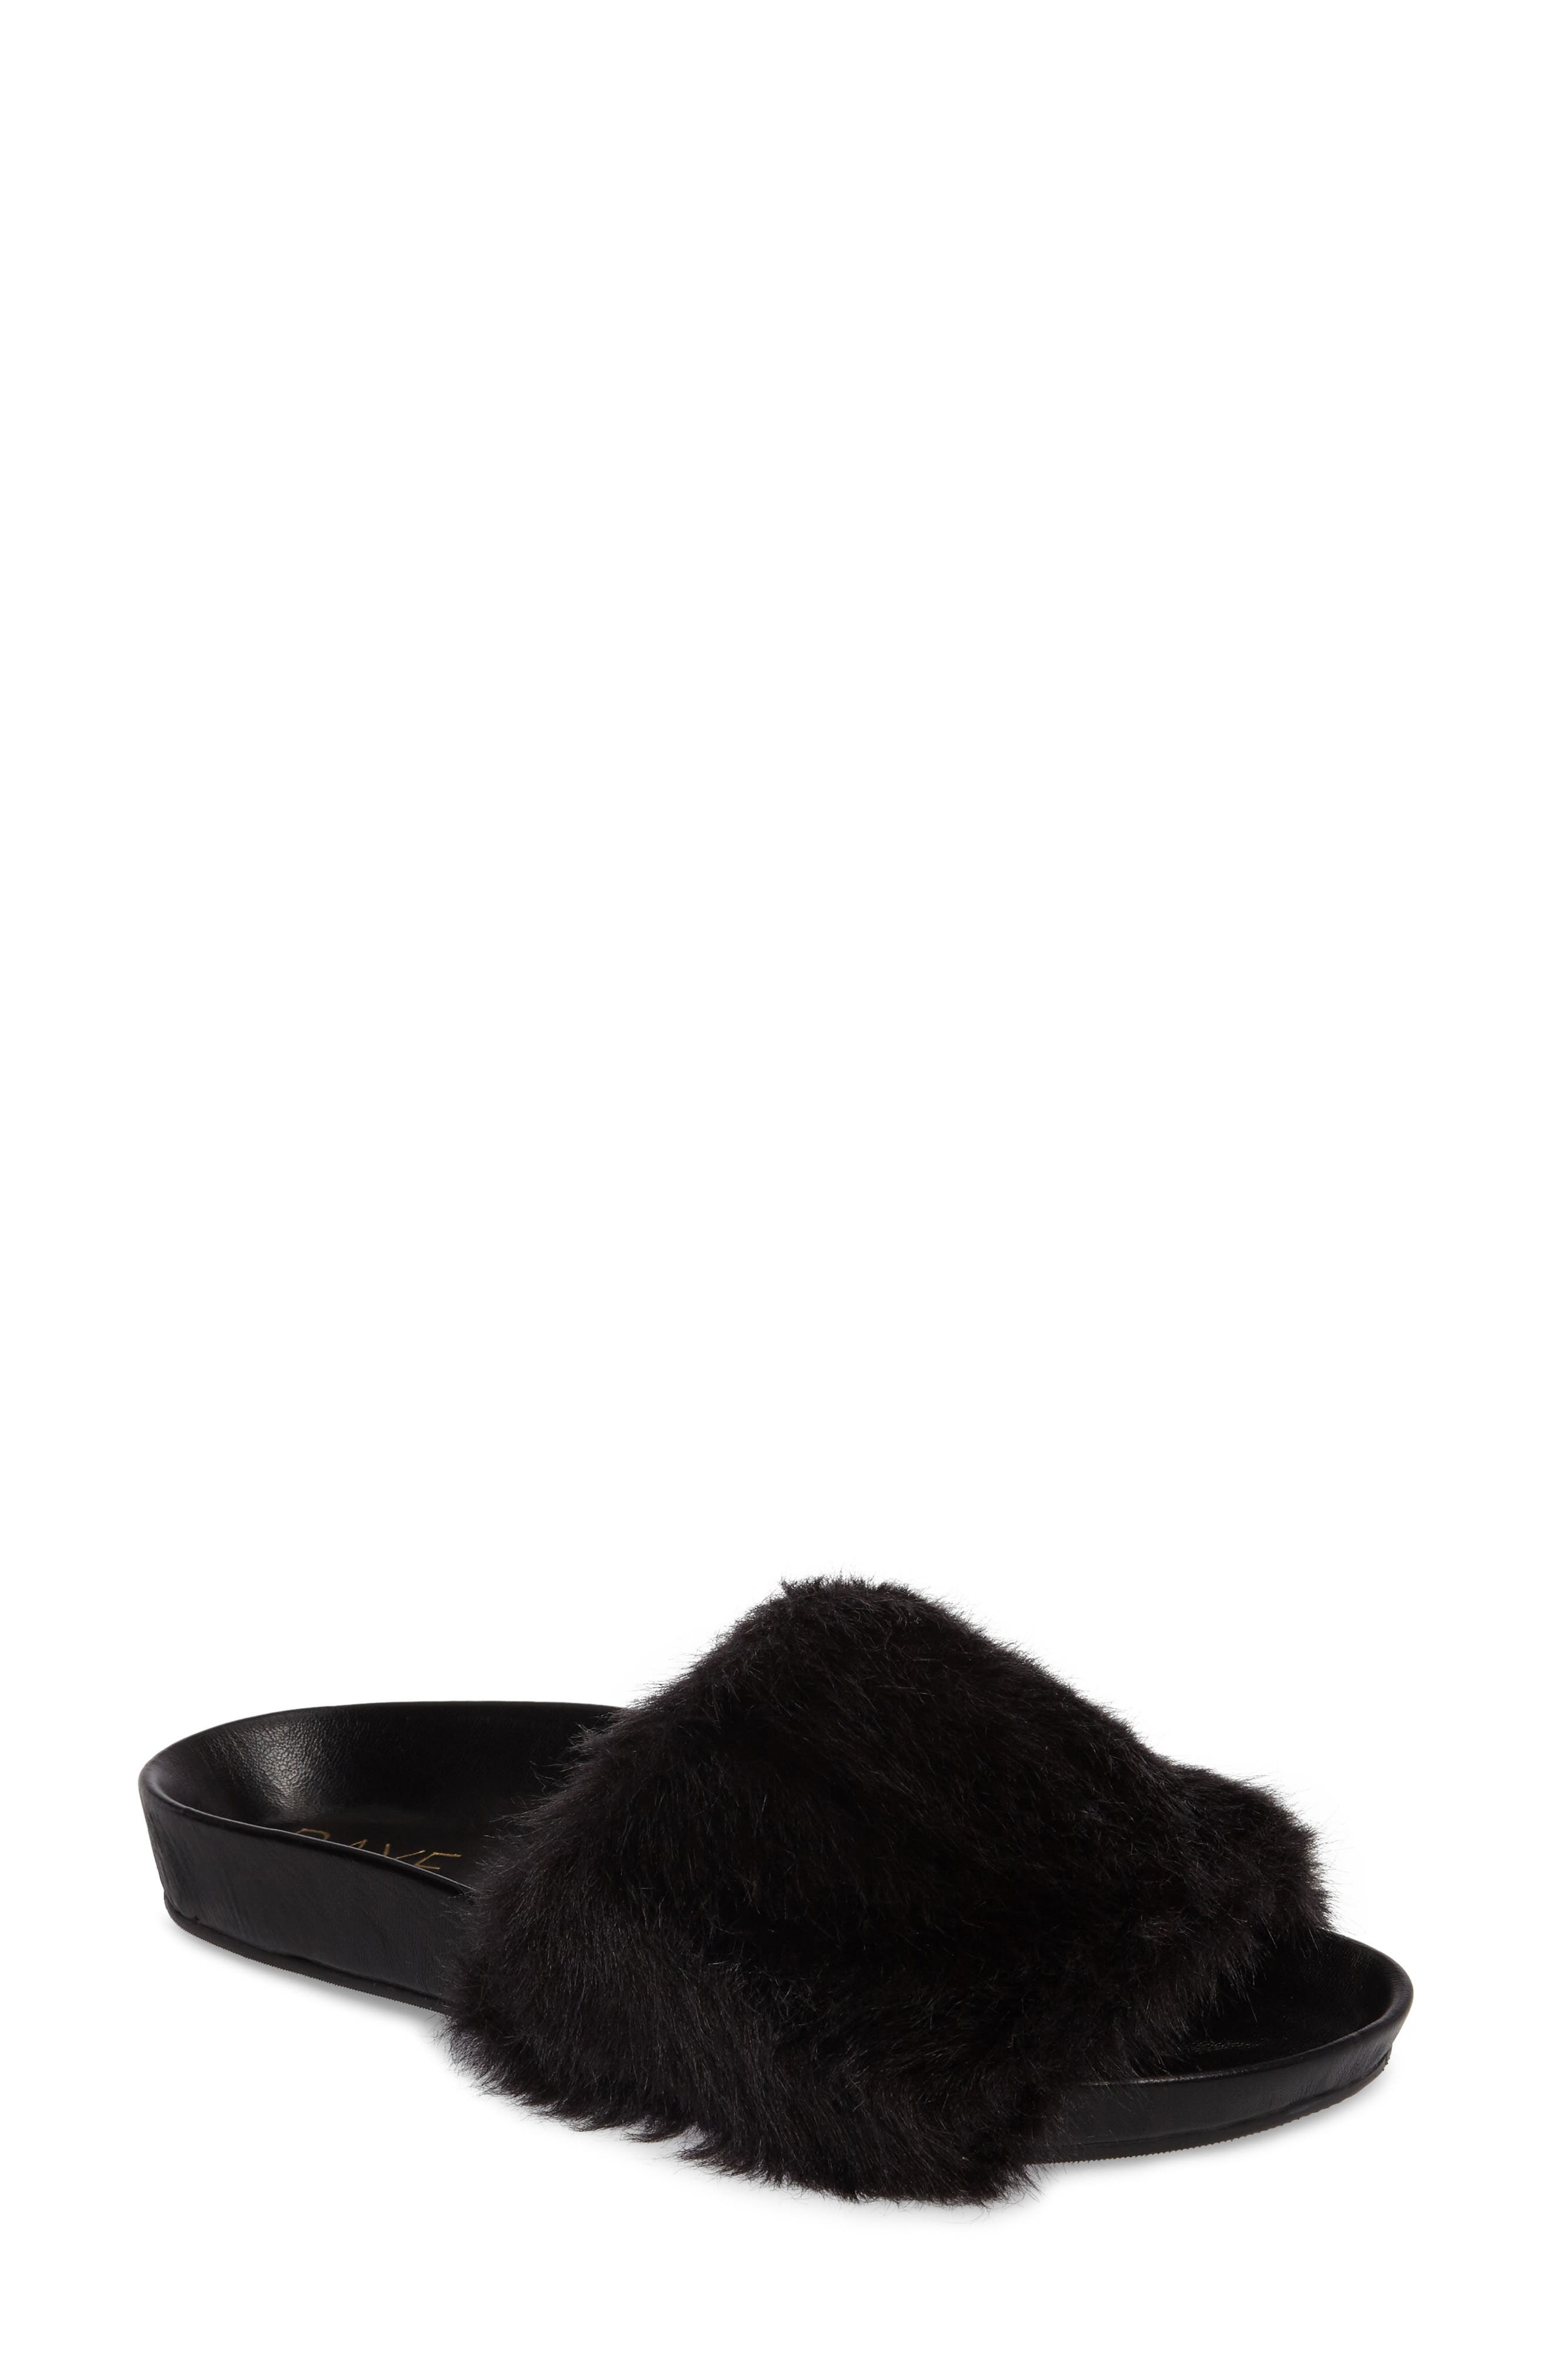 Sirius Faux Fur Slide,                             Main thumbnail 1, color,                             003